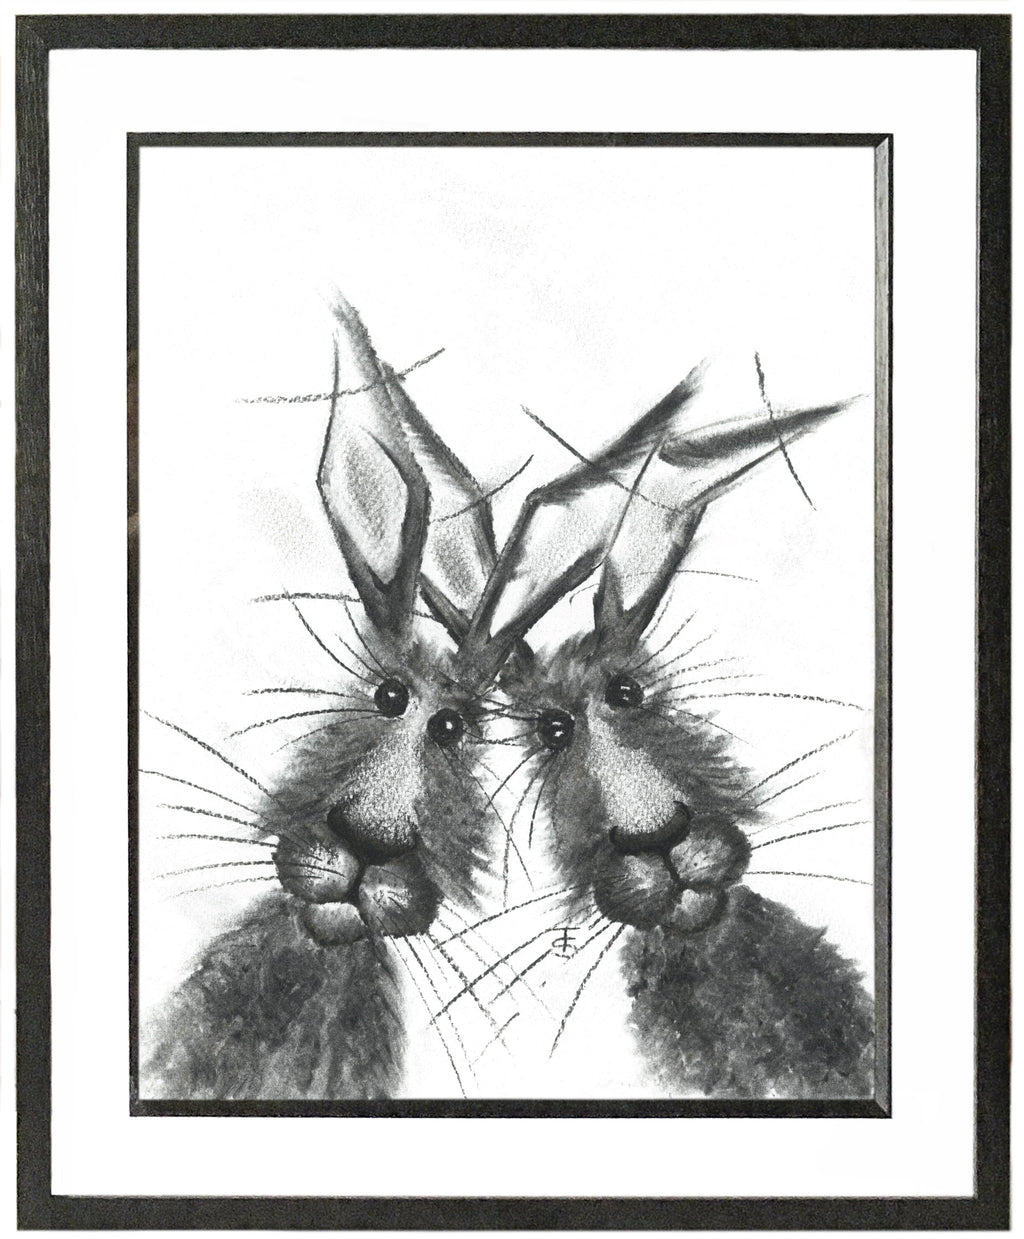 Spike & Marlow Framed Hare Illustration | GORGEOUS GEORGE